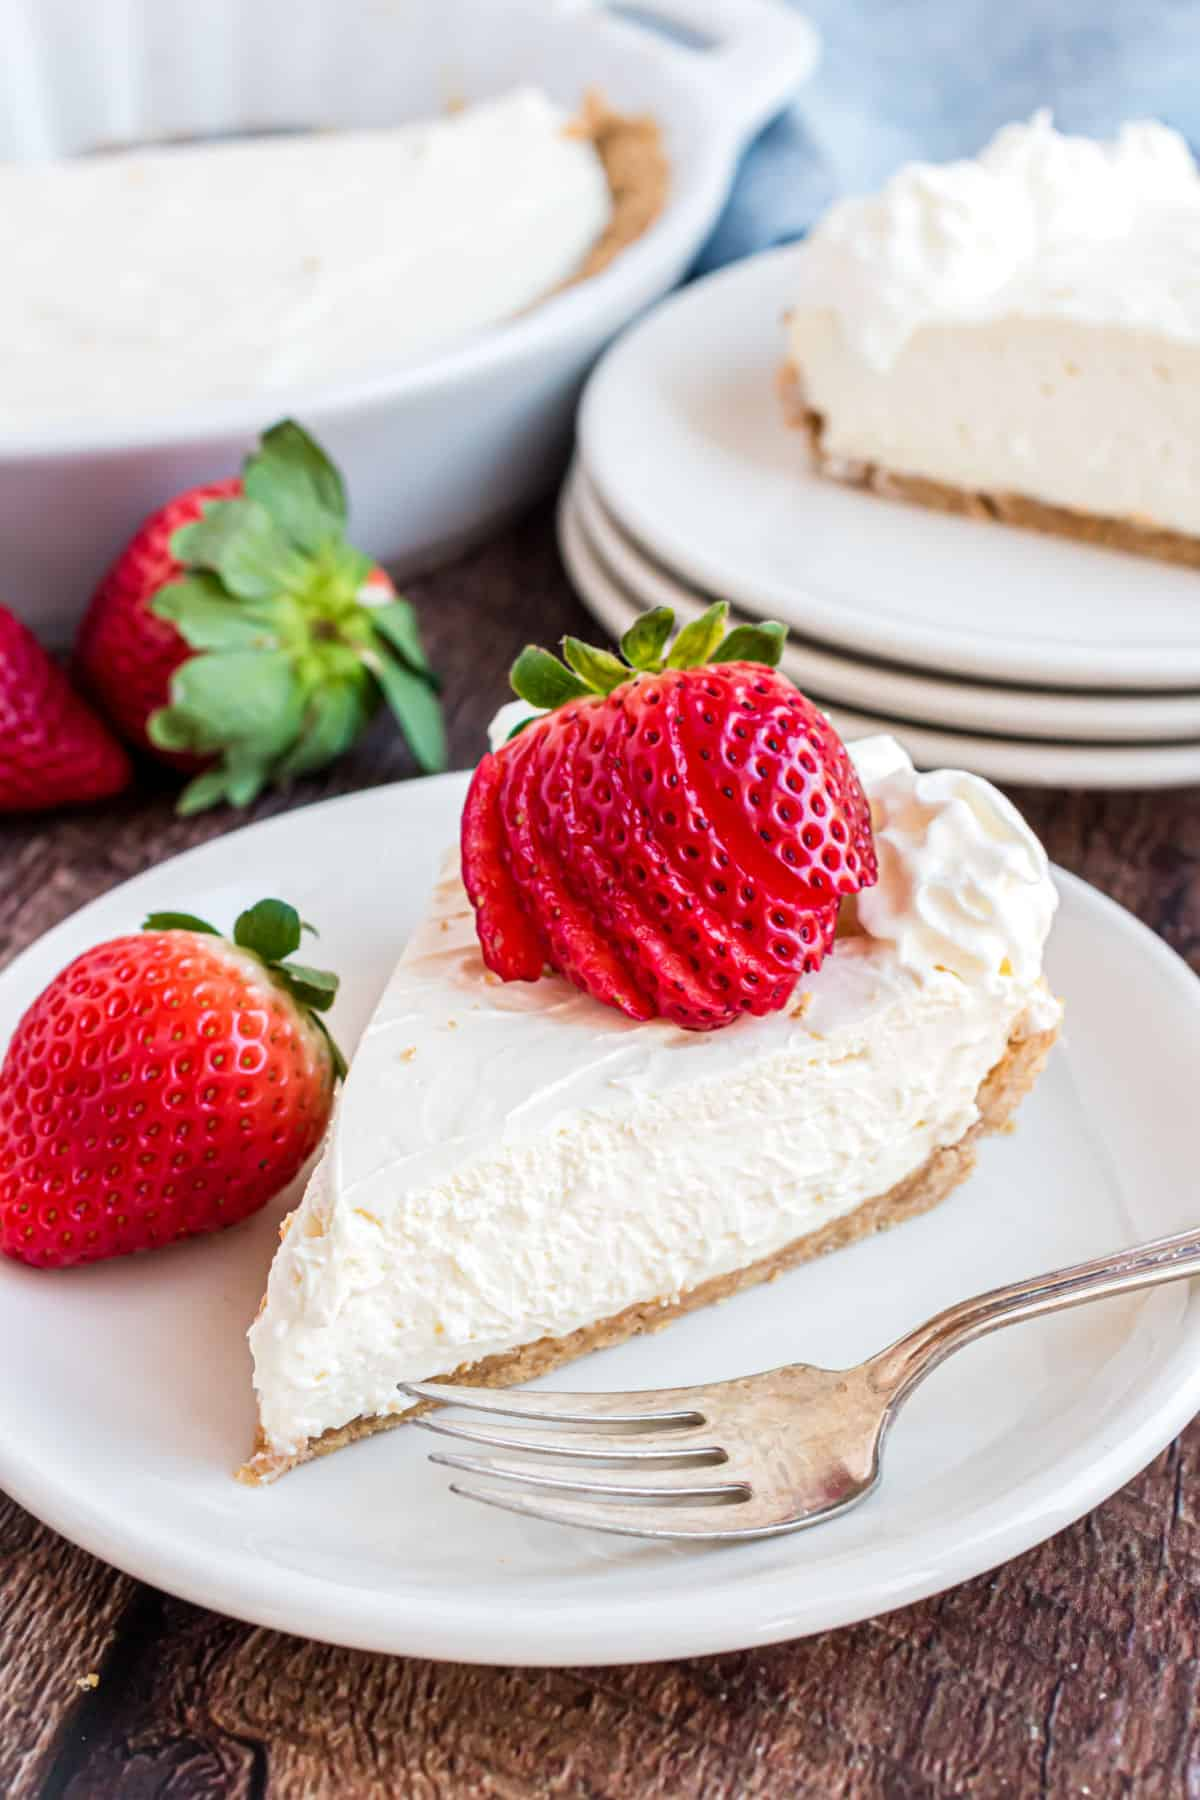 Slice of cheesecake with fresh strawberry and whipped cream.